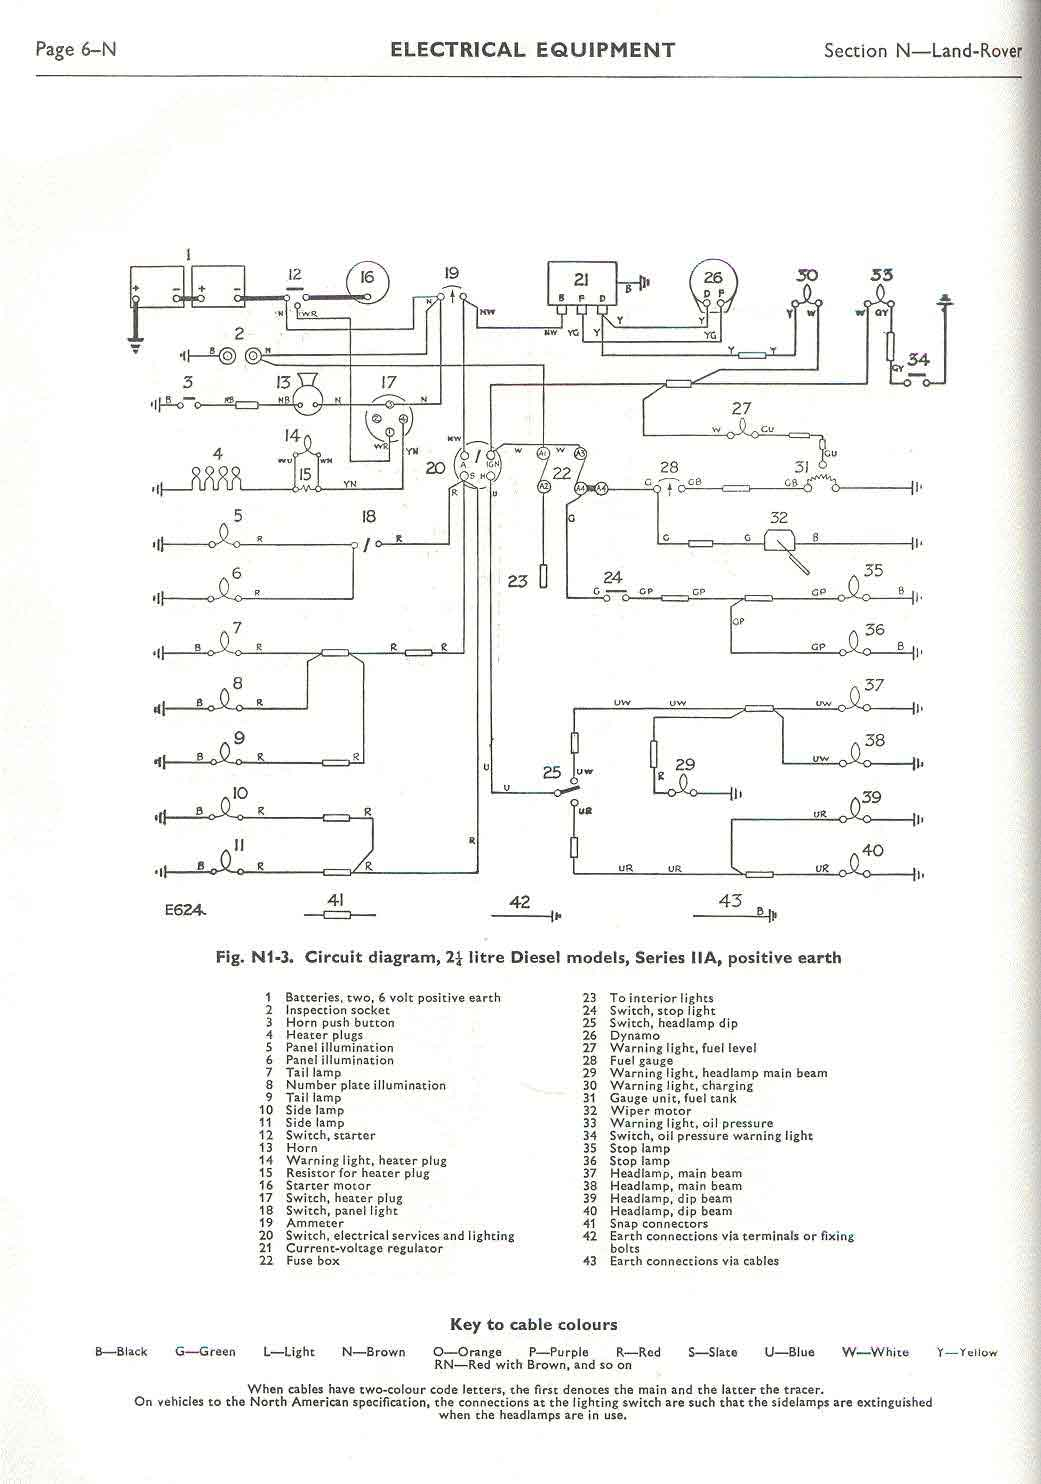 land rover wiring diagram series 2 series 3 diesel electric bits | landyzone - land rover forum